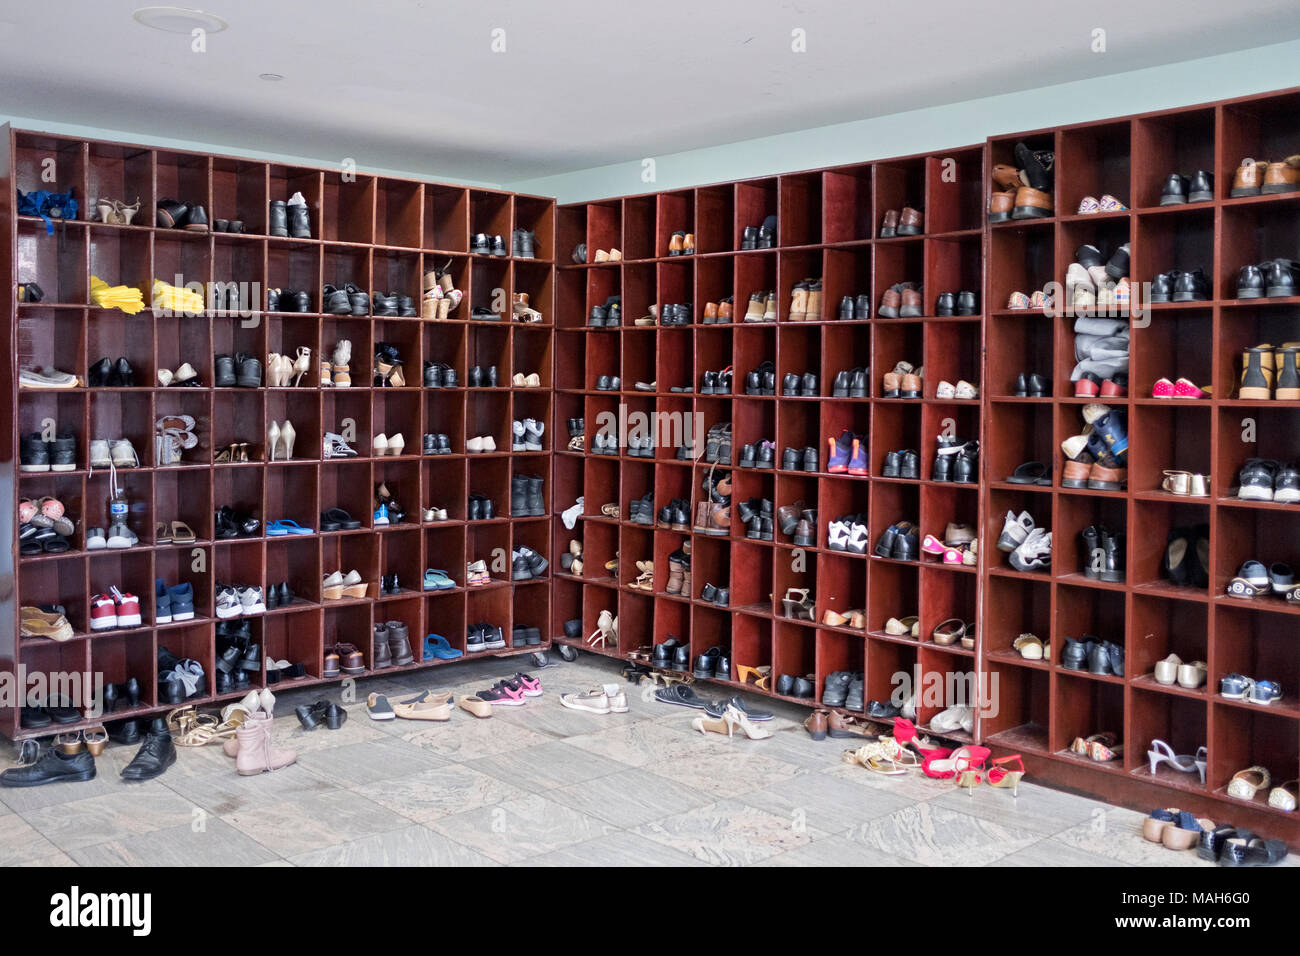 The cubicles for storing shoes and socks at the Sikh Cultural Center in Richmond Hill, Queens New York. The items are not worn in the temple. - Stock Image